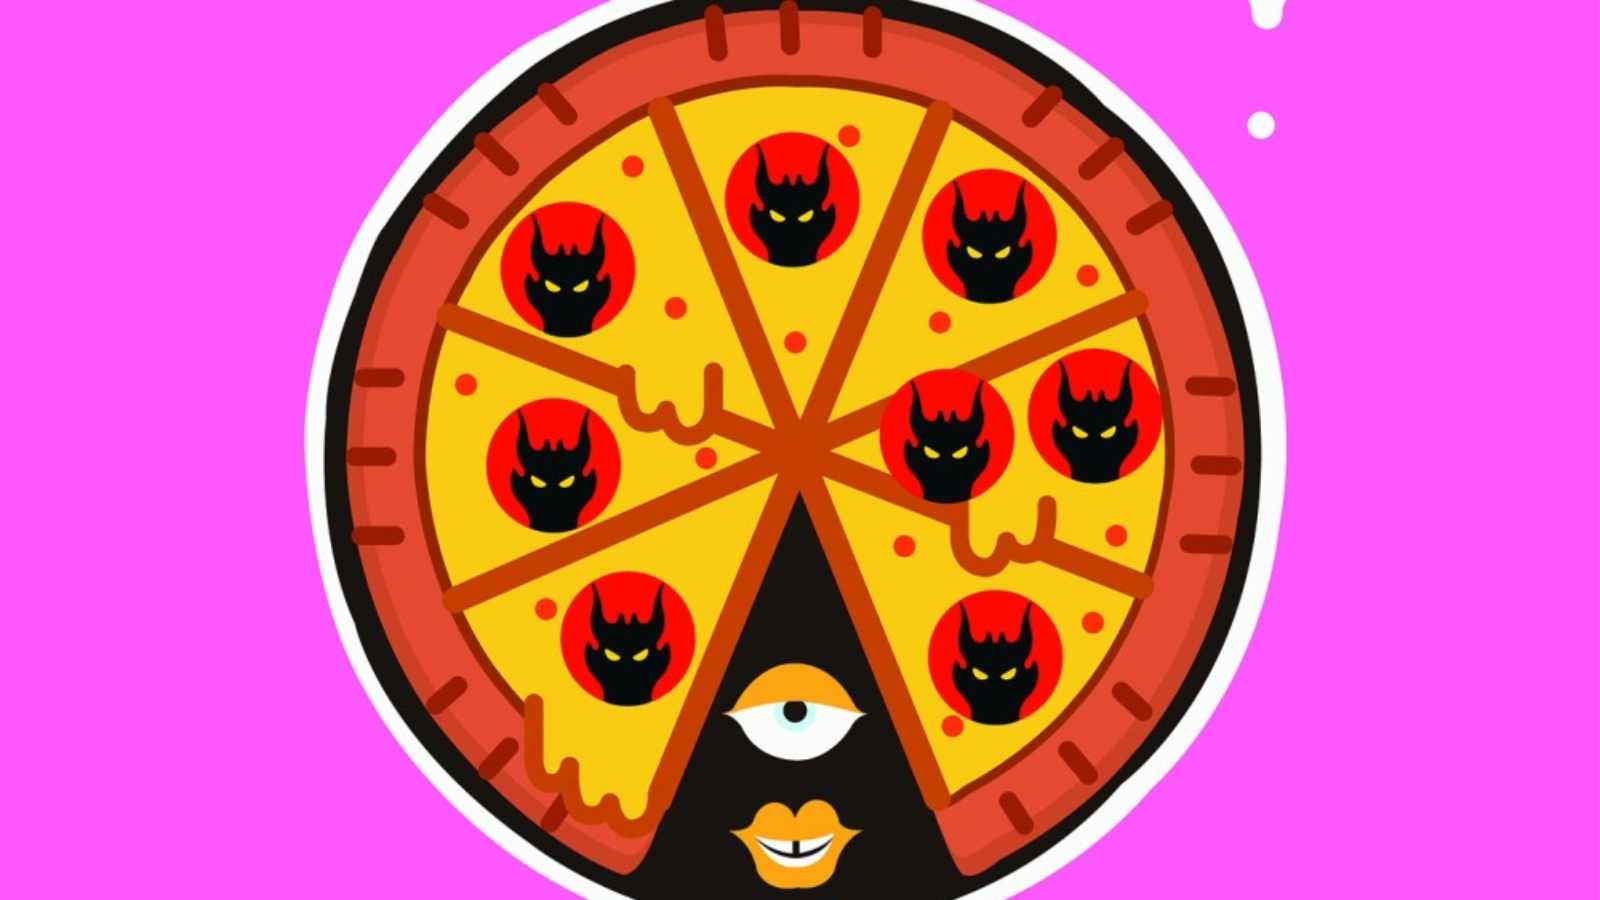 Pizza_Conspiracy_1440